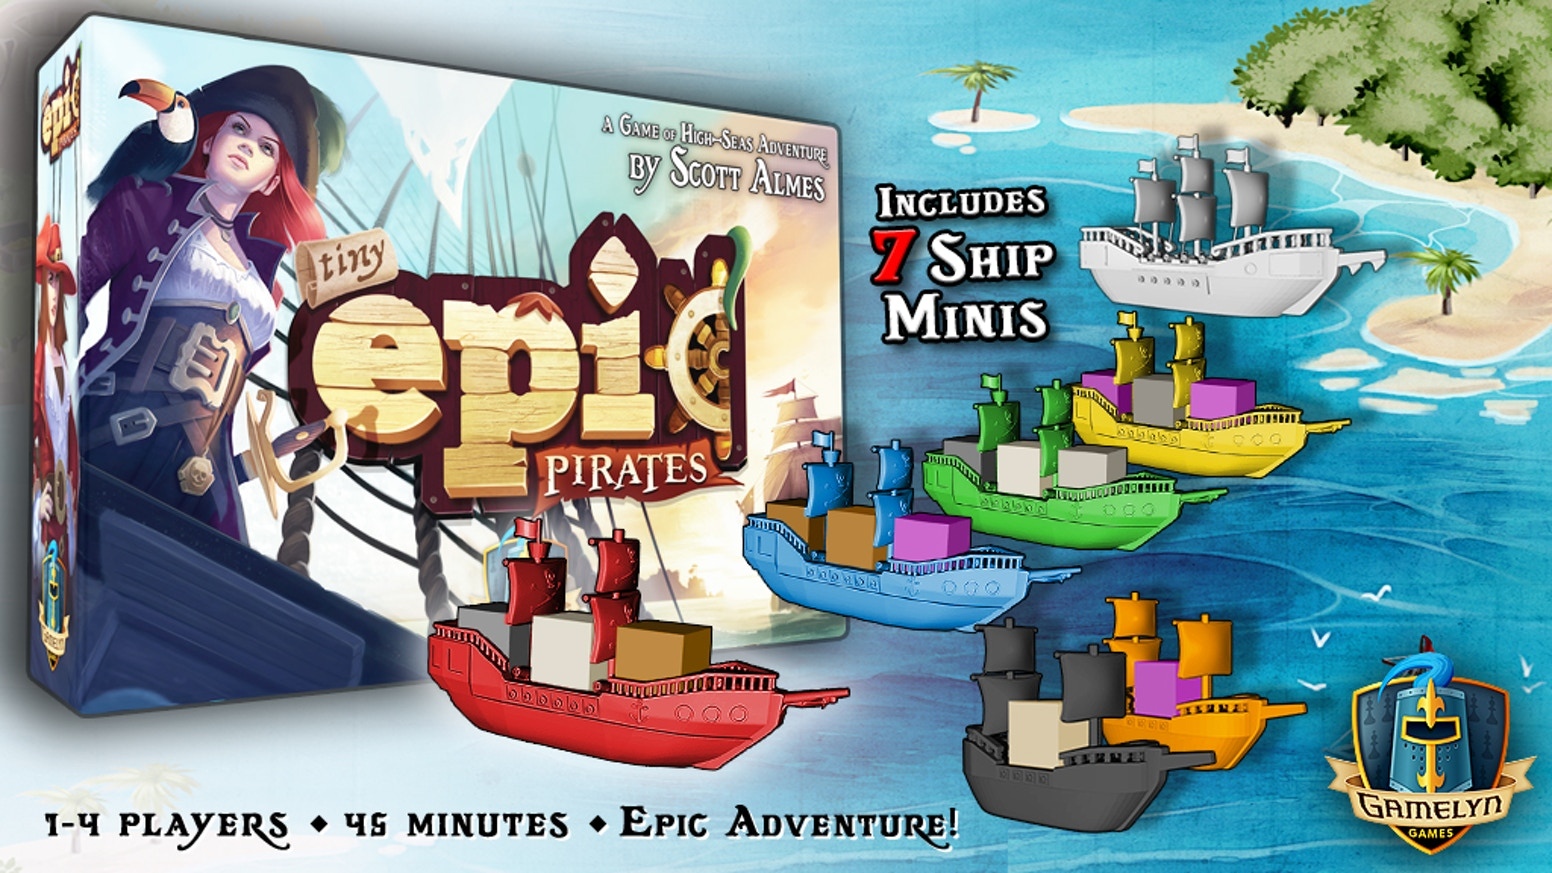 A high-thrills pirate game for 1-4 players featuring a unique rondel system, ship minis and language independent play!  It's Tiny Epic!